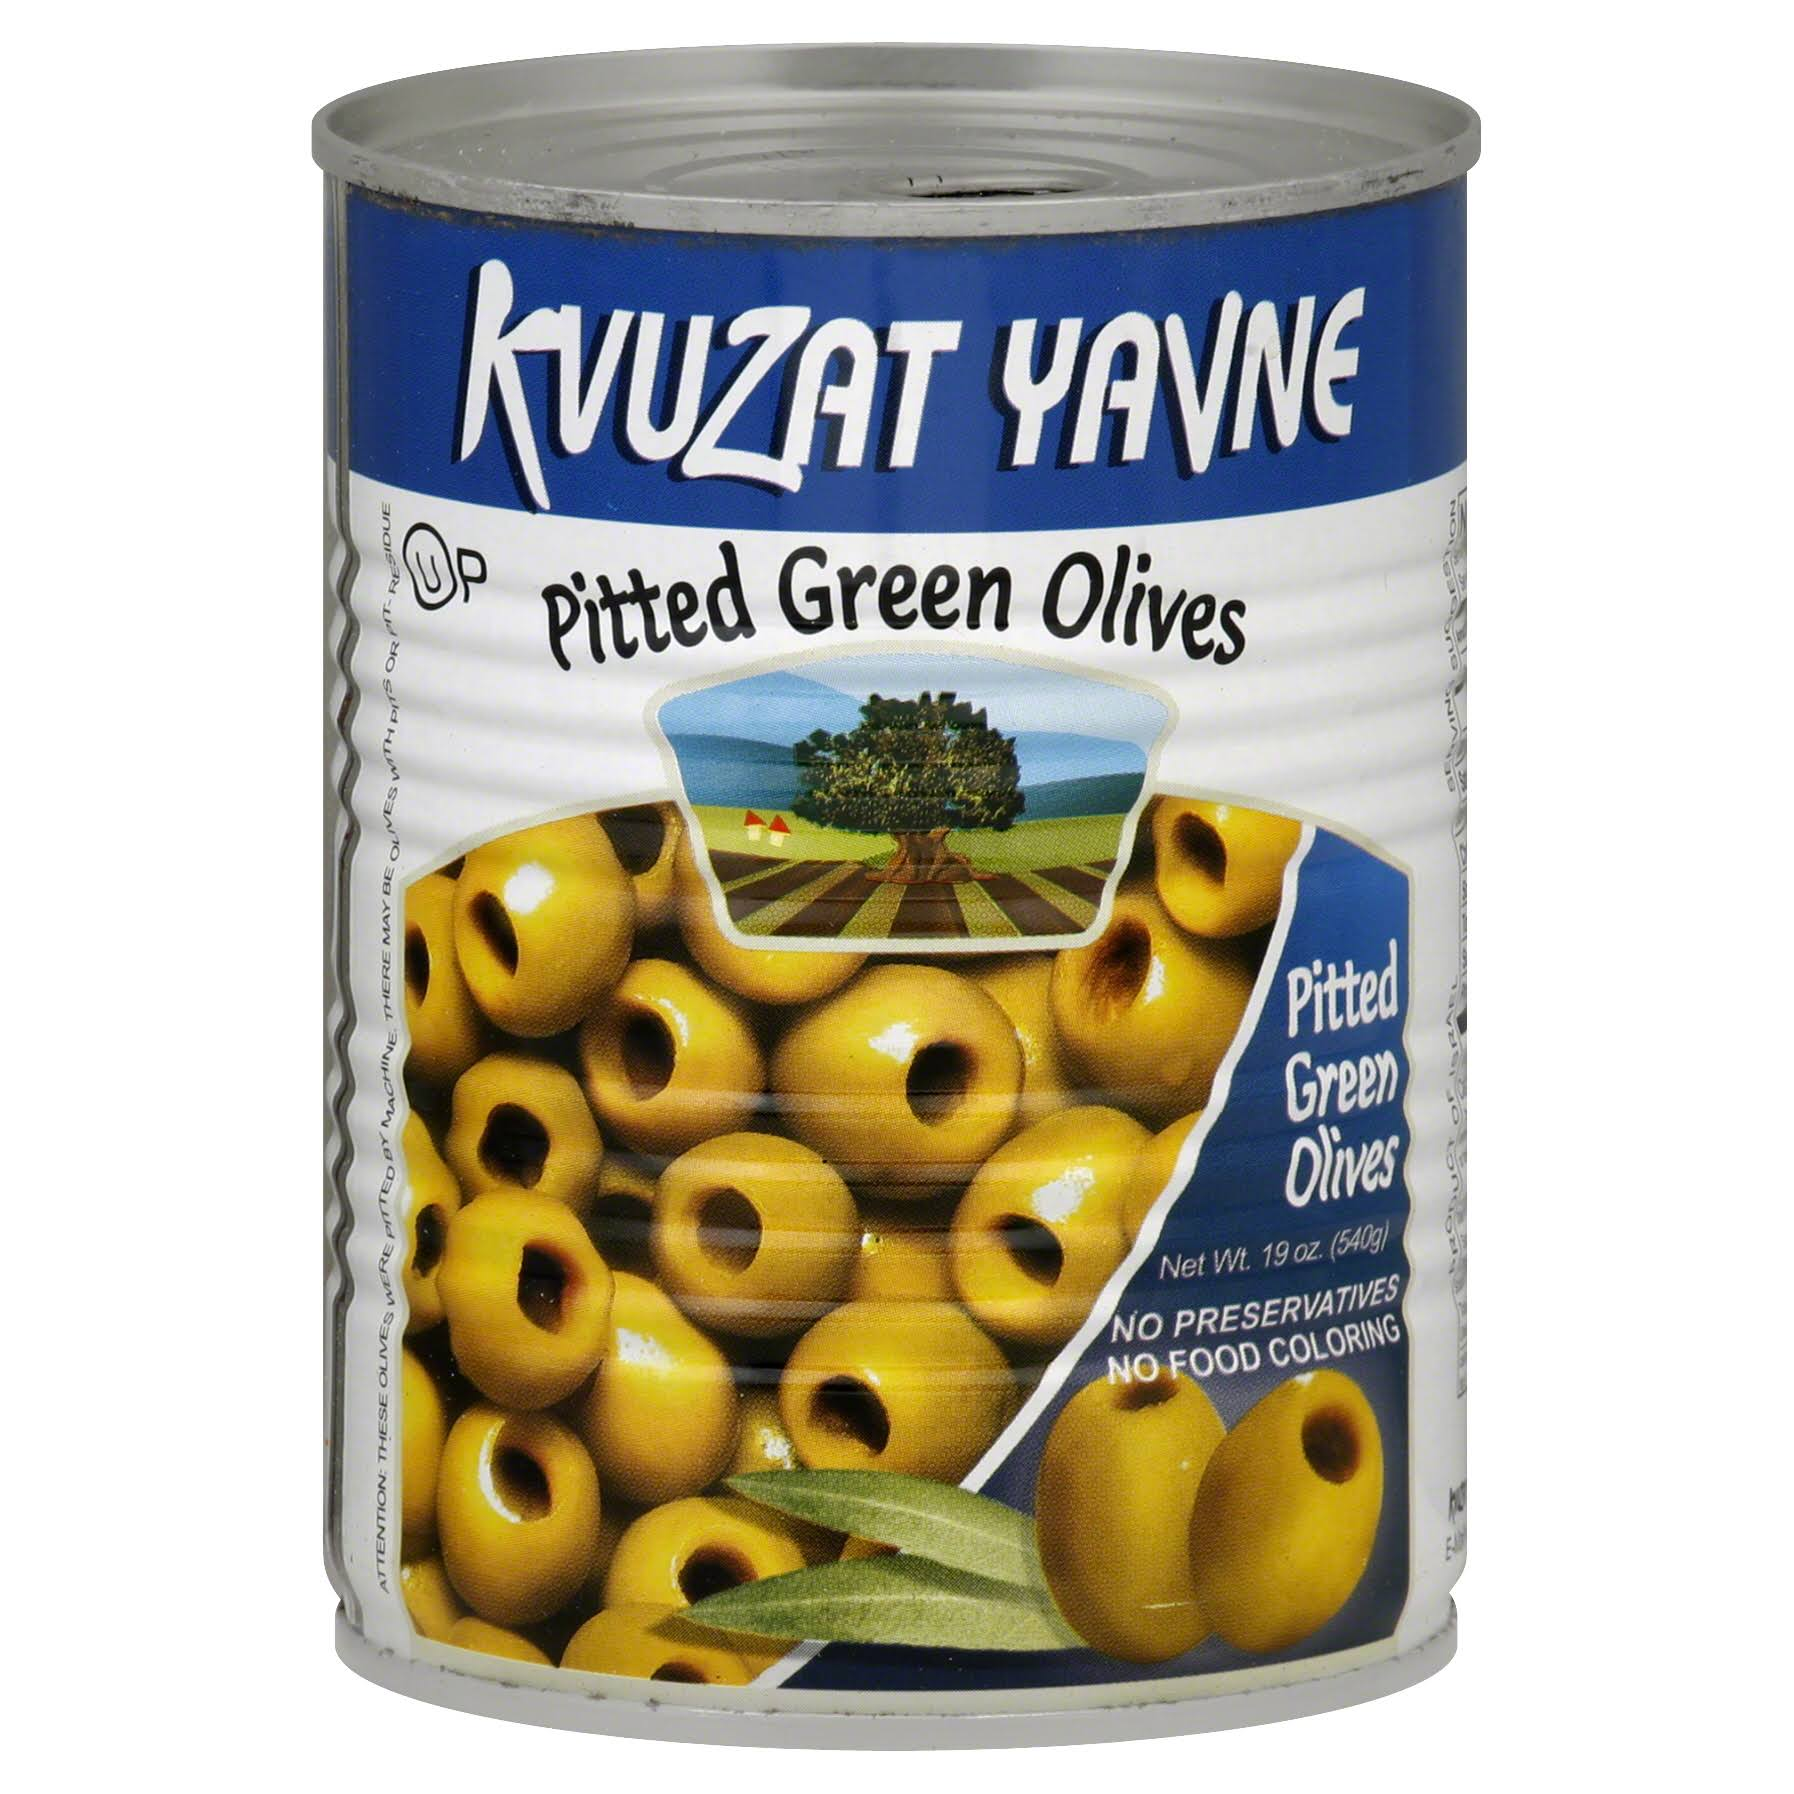 Kvuzat Yavne Pitted Green Olives - 19oz